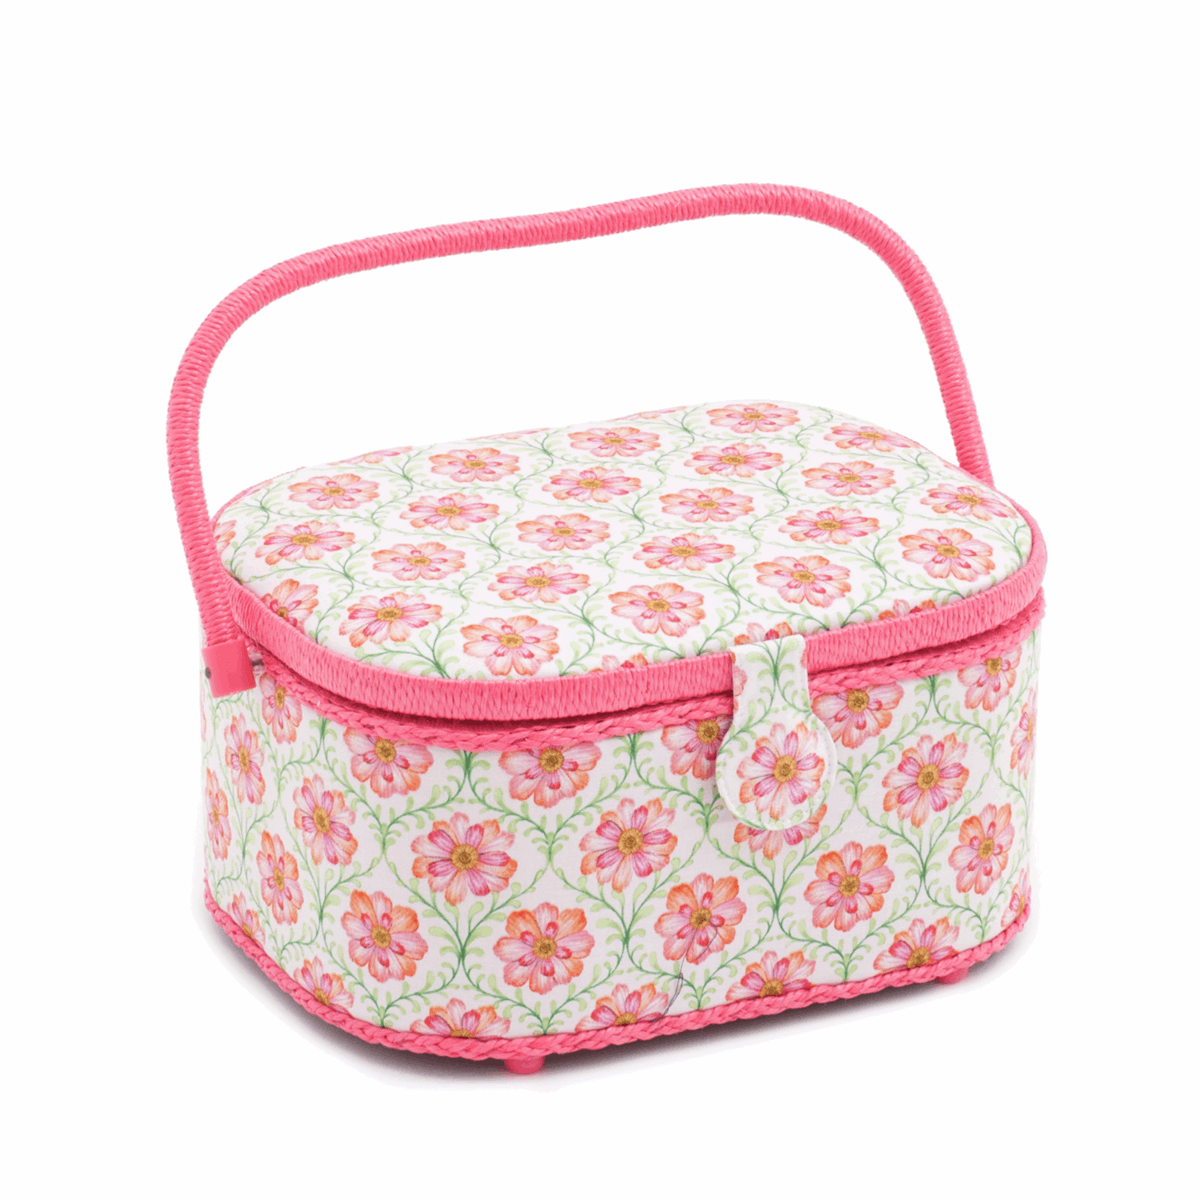 Blossoming Trellis Sewing Box (L): Oval